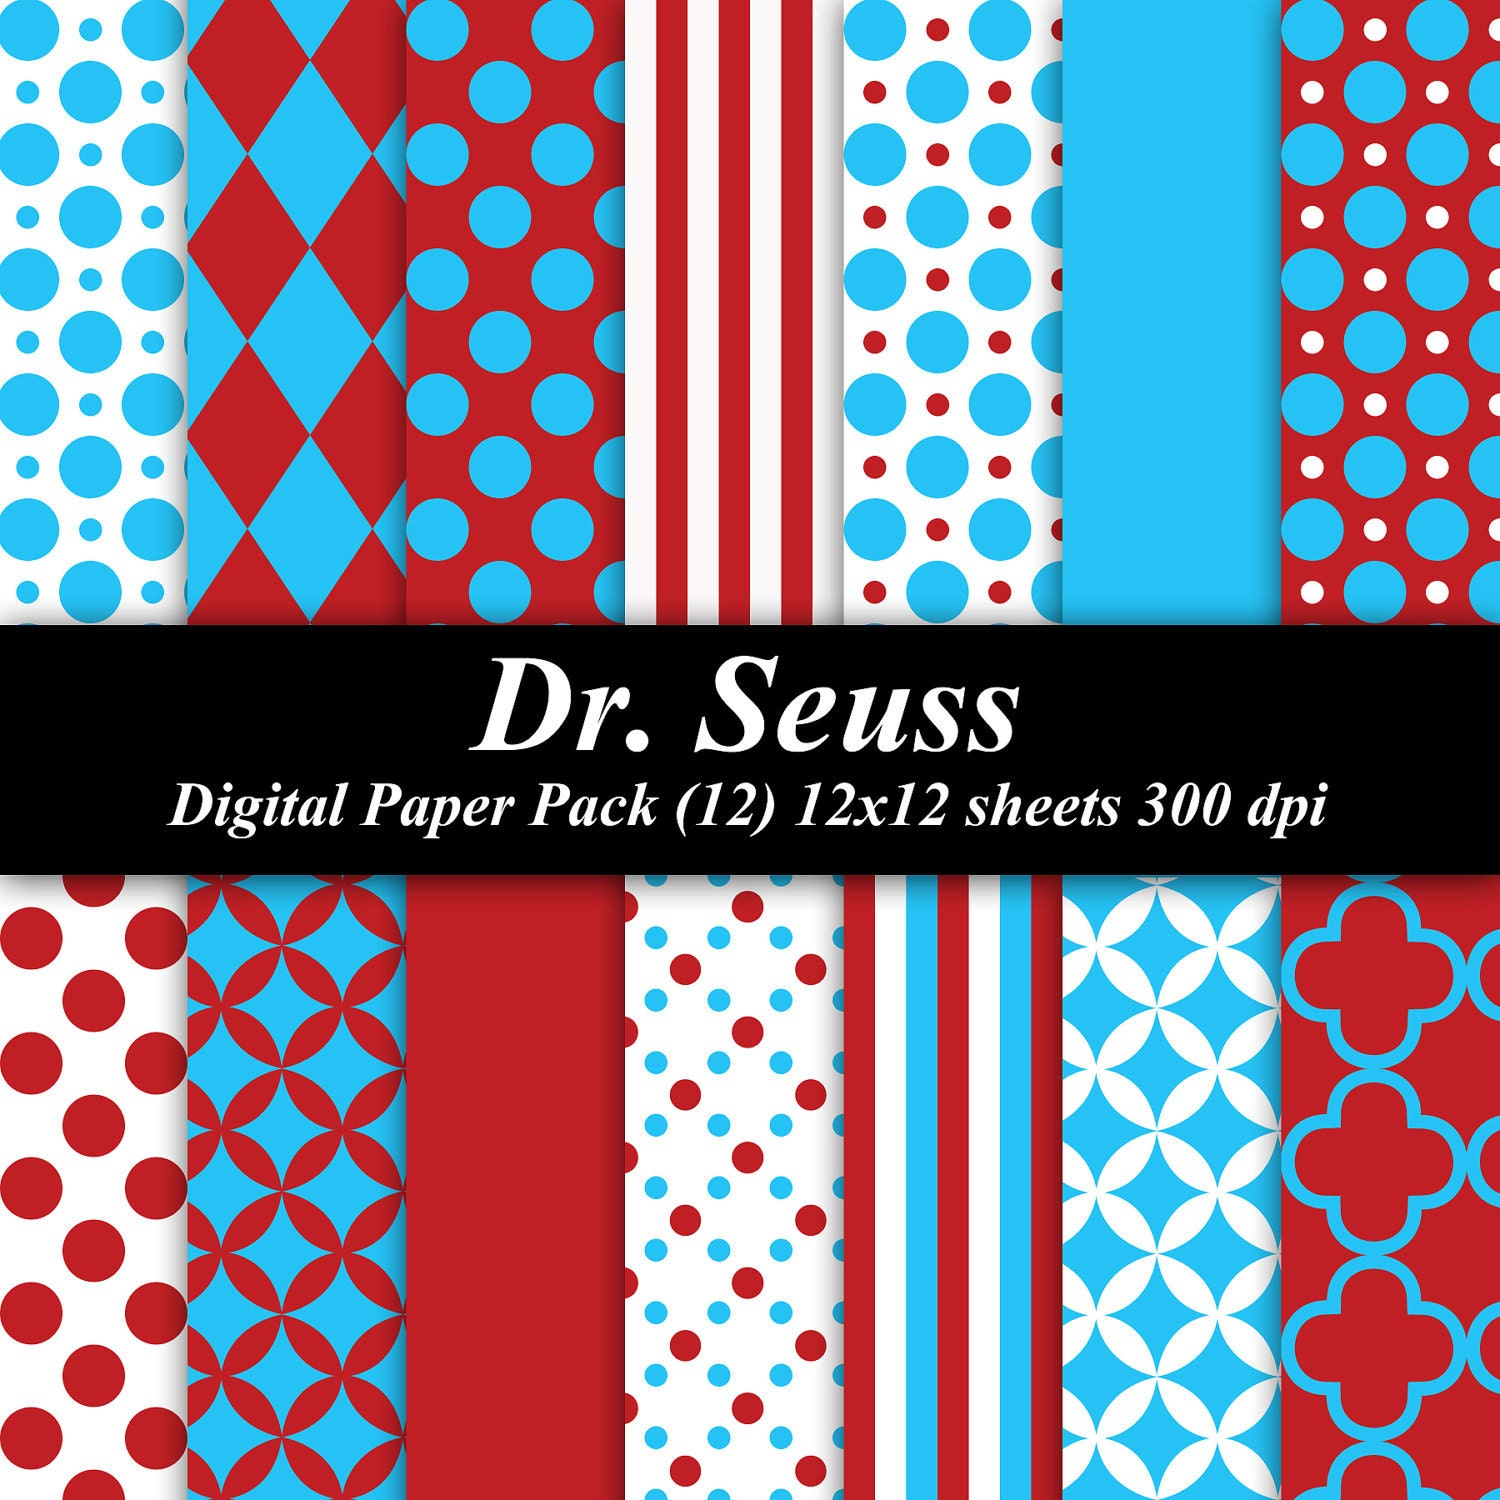 dr seuss essay dr seuss essay academic about